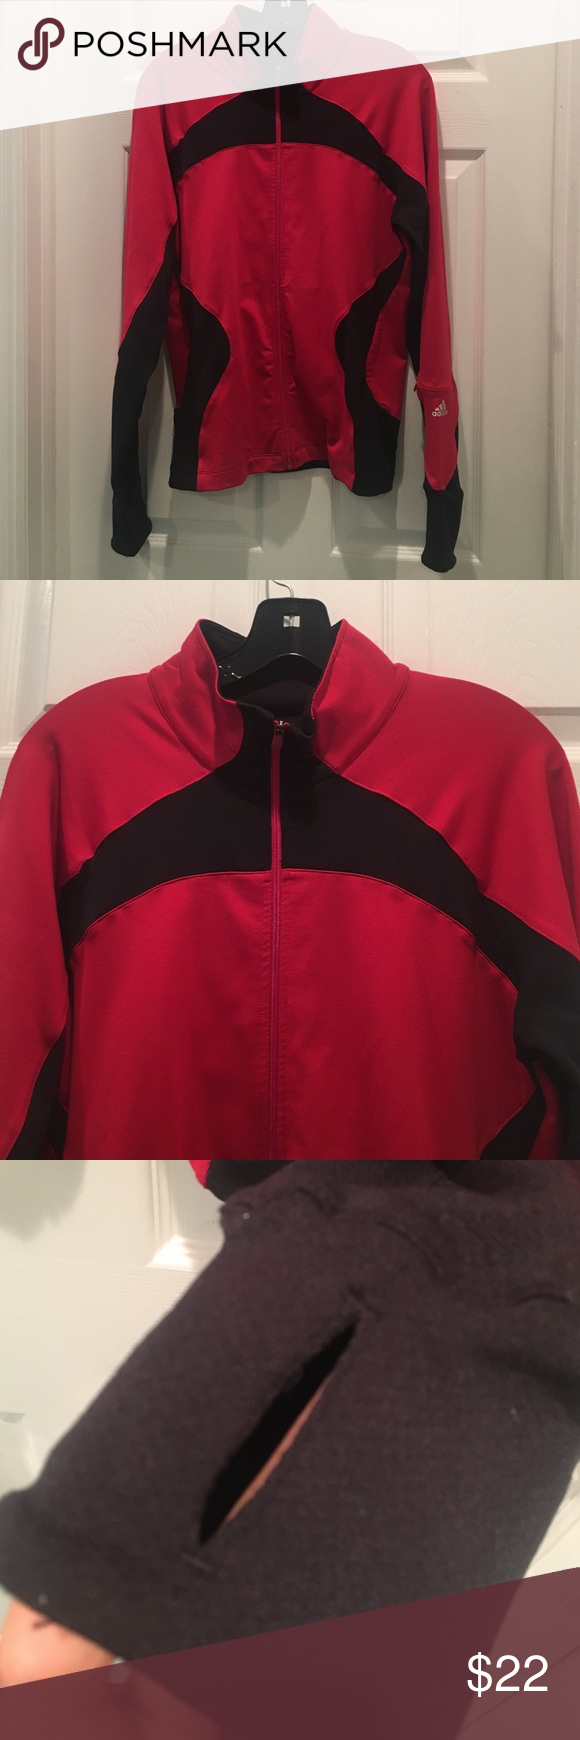 Women's Red & Black Adidas Jacket Size L Worn once Adidas Jackets & Coats